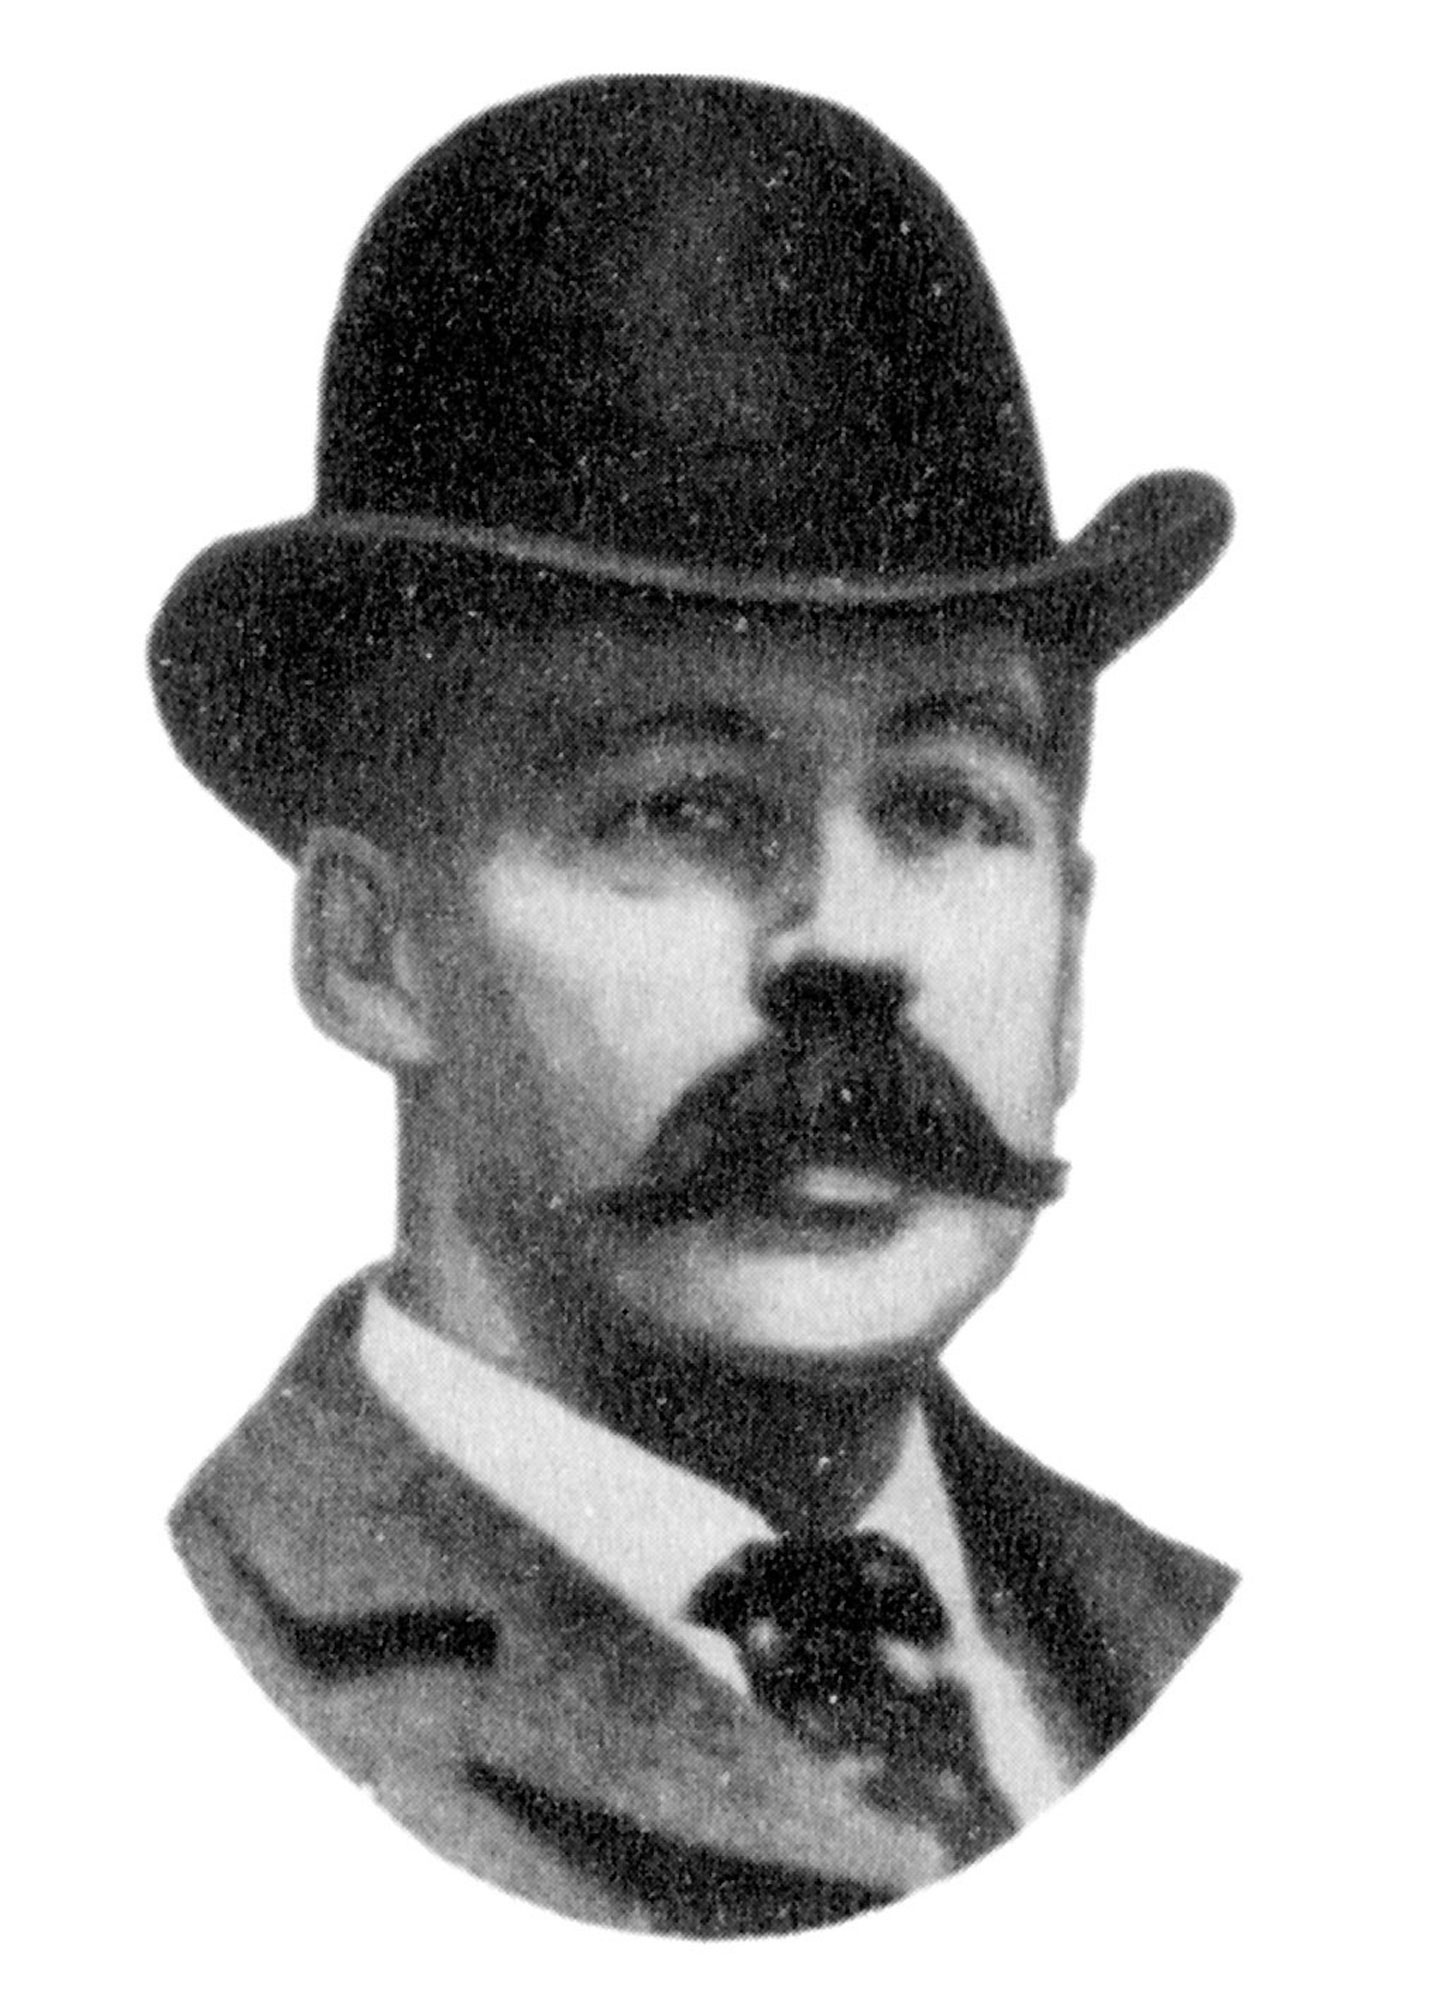 Dr. H.H. Holmes, the pseudonym of New Hampshire-born physician Herman Webster Mudgett, shown in an undated photo, is believed by many authorities to have been America's first urban serial killer.